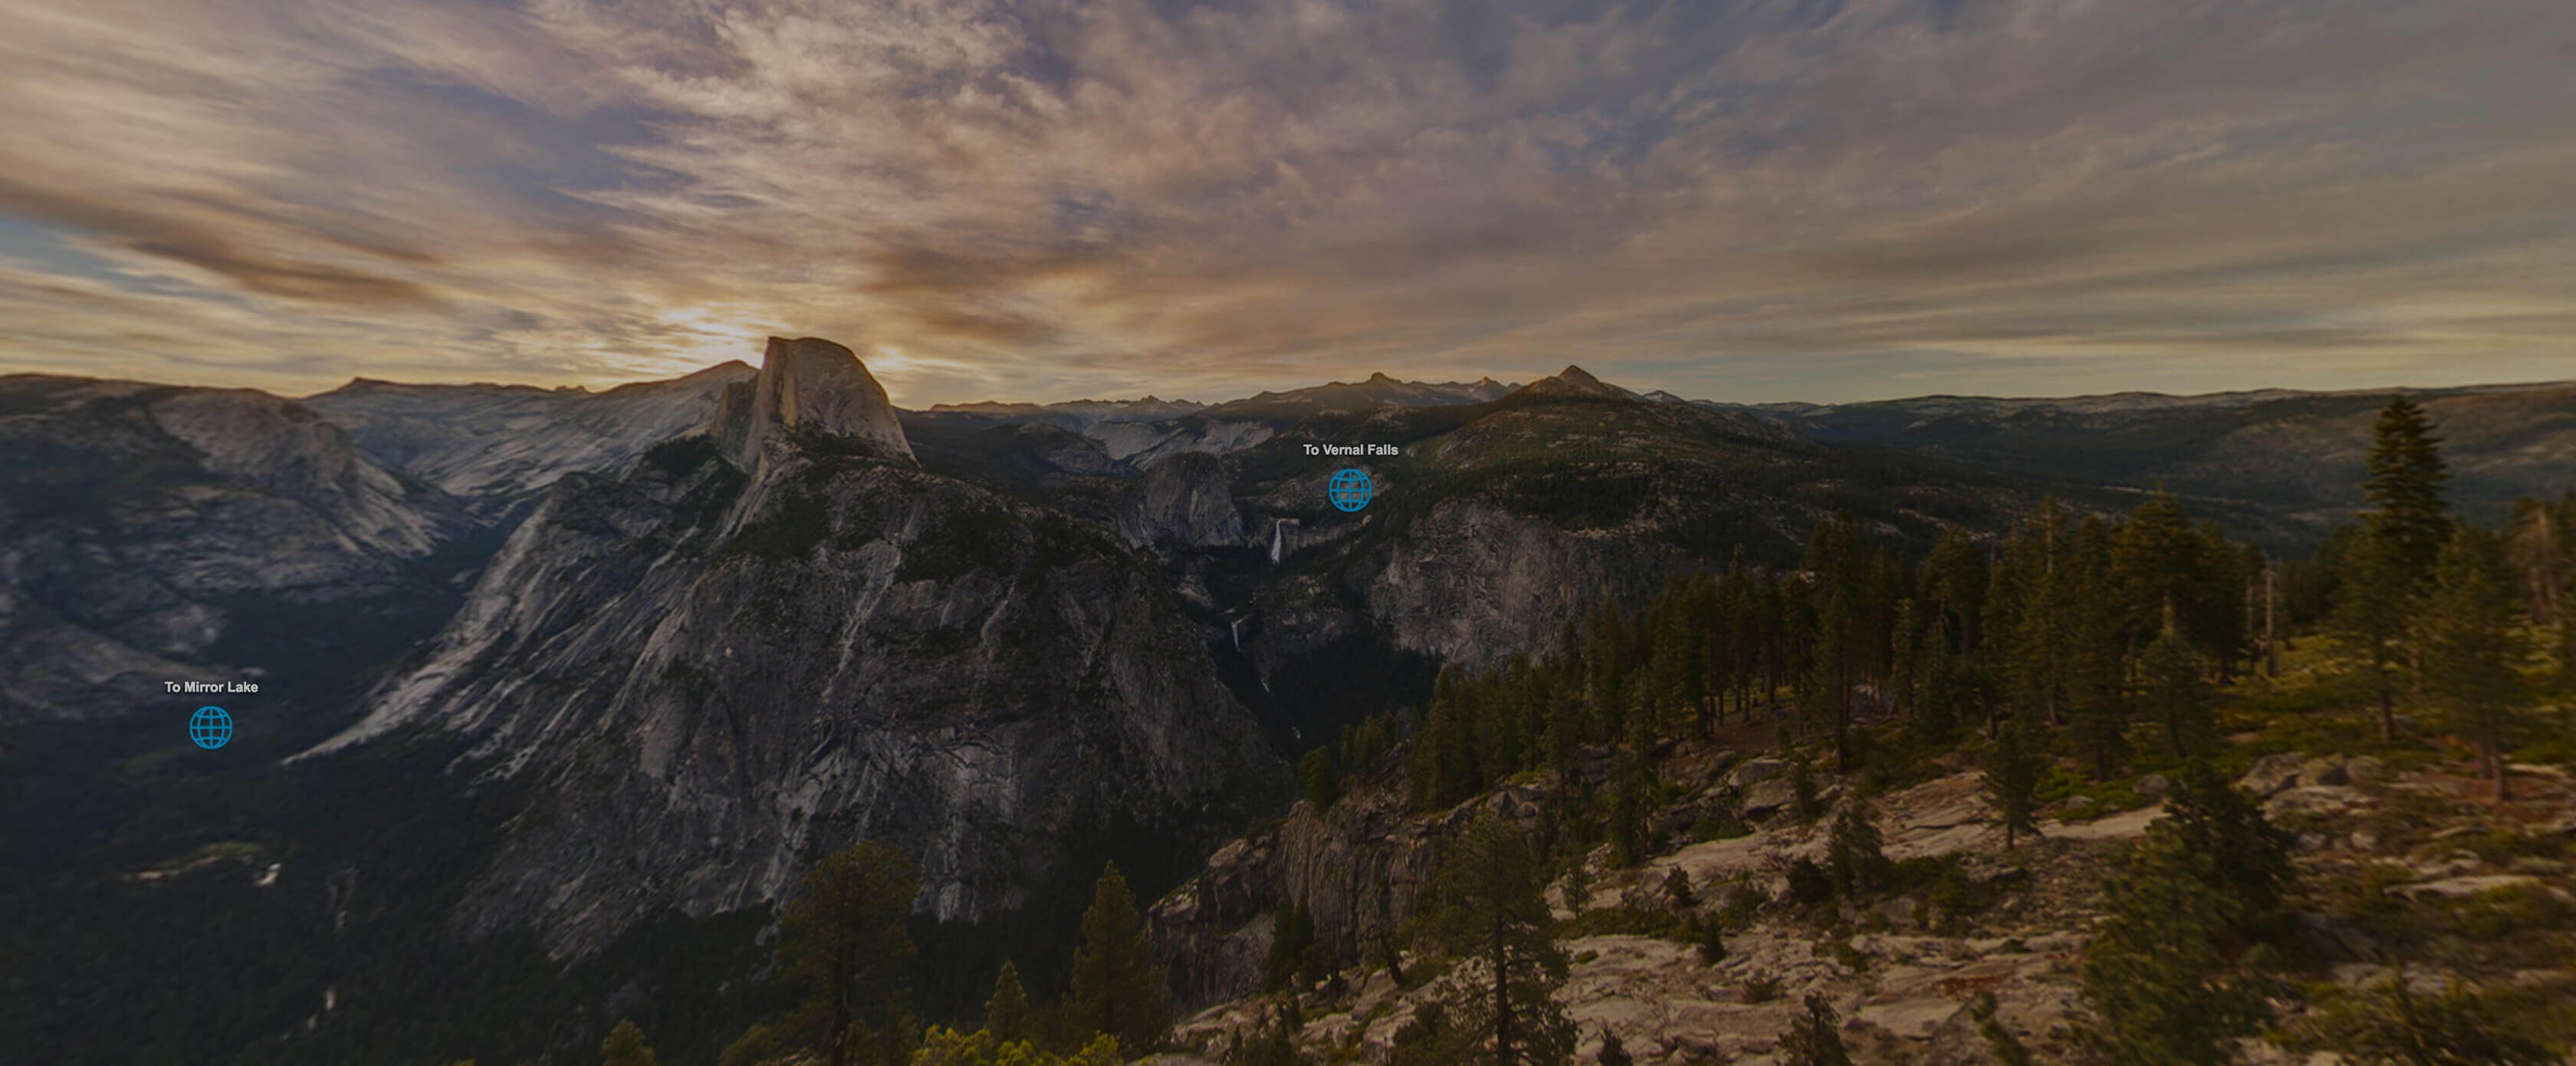 Explore Yosemite Virtual Tour